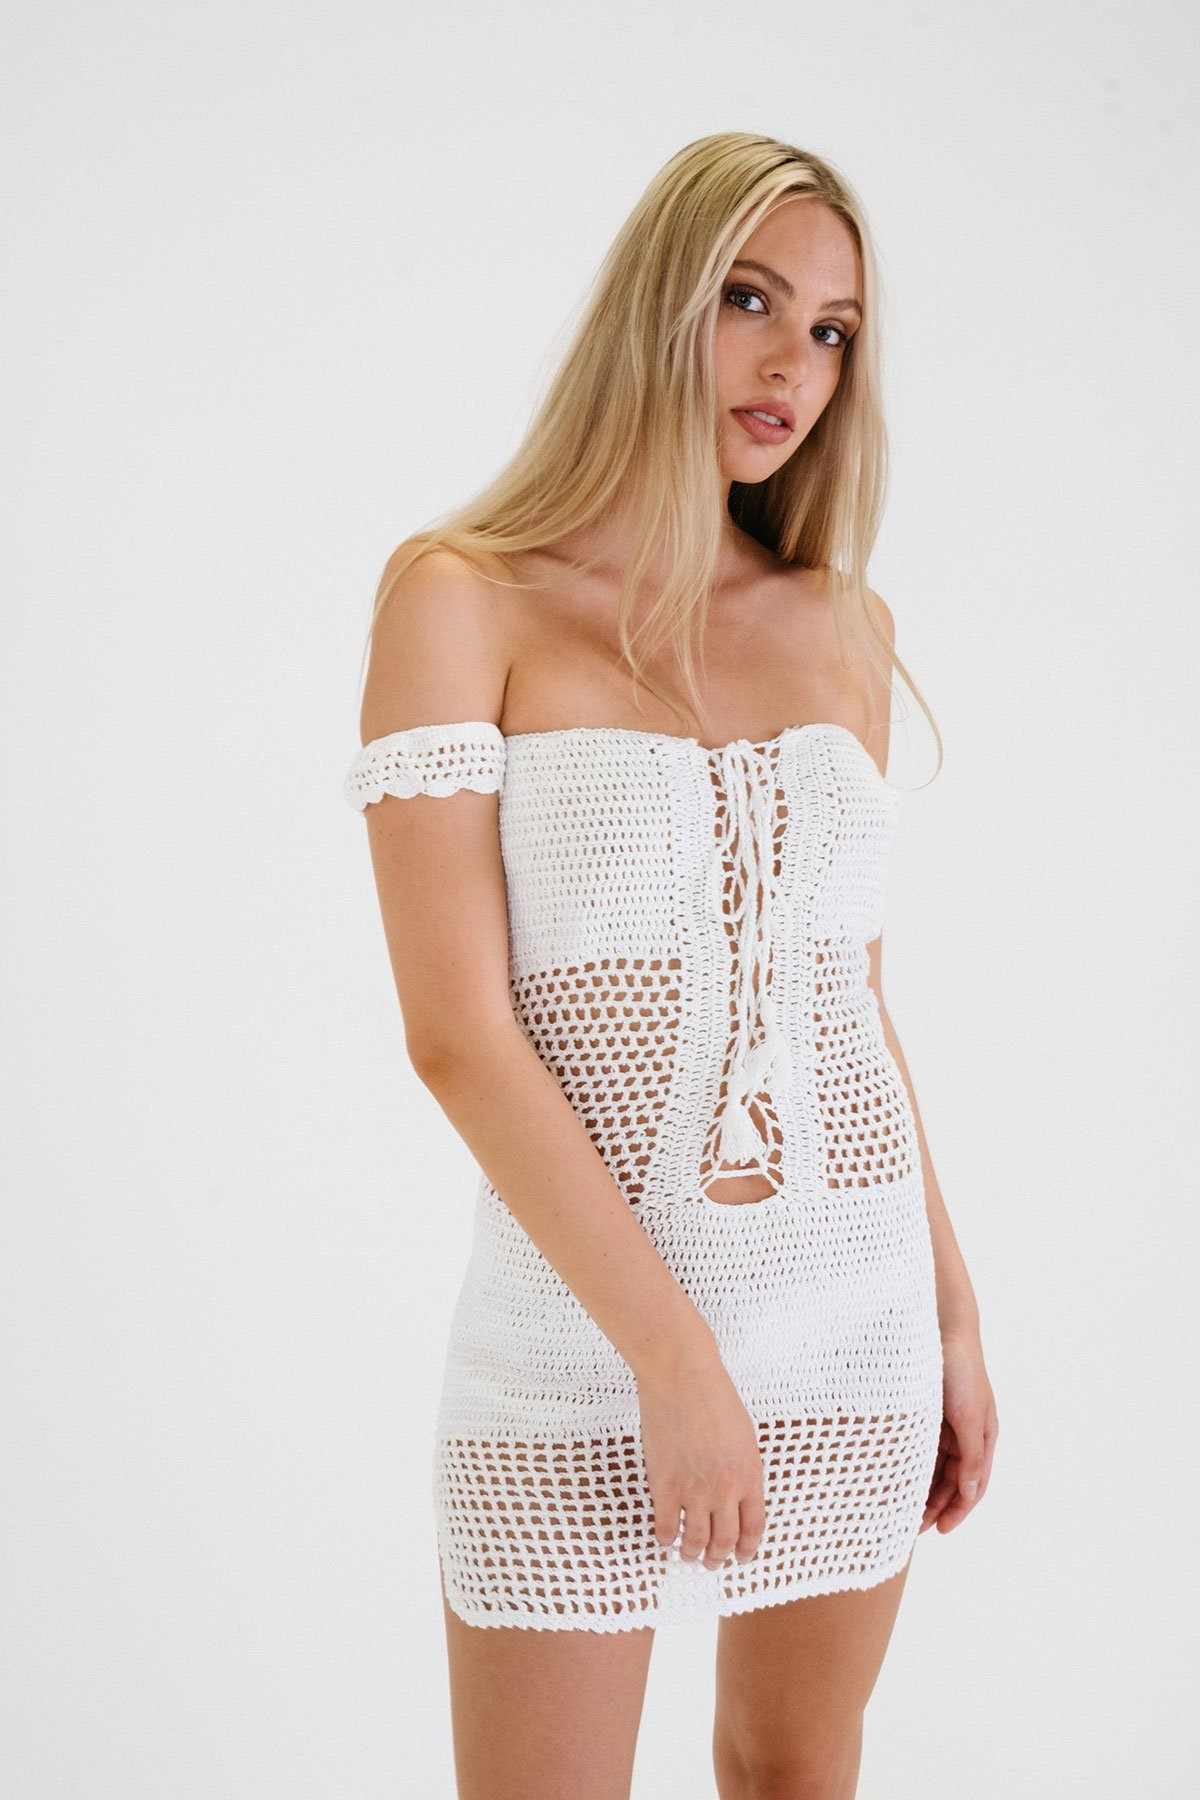 MONACO Mesh Beach Dress - bahia blue boutique - Dress